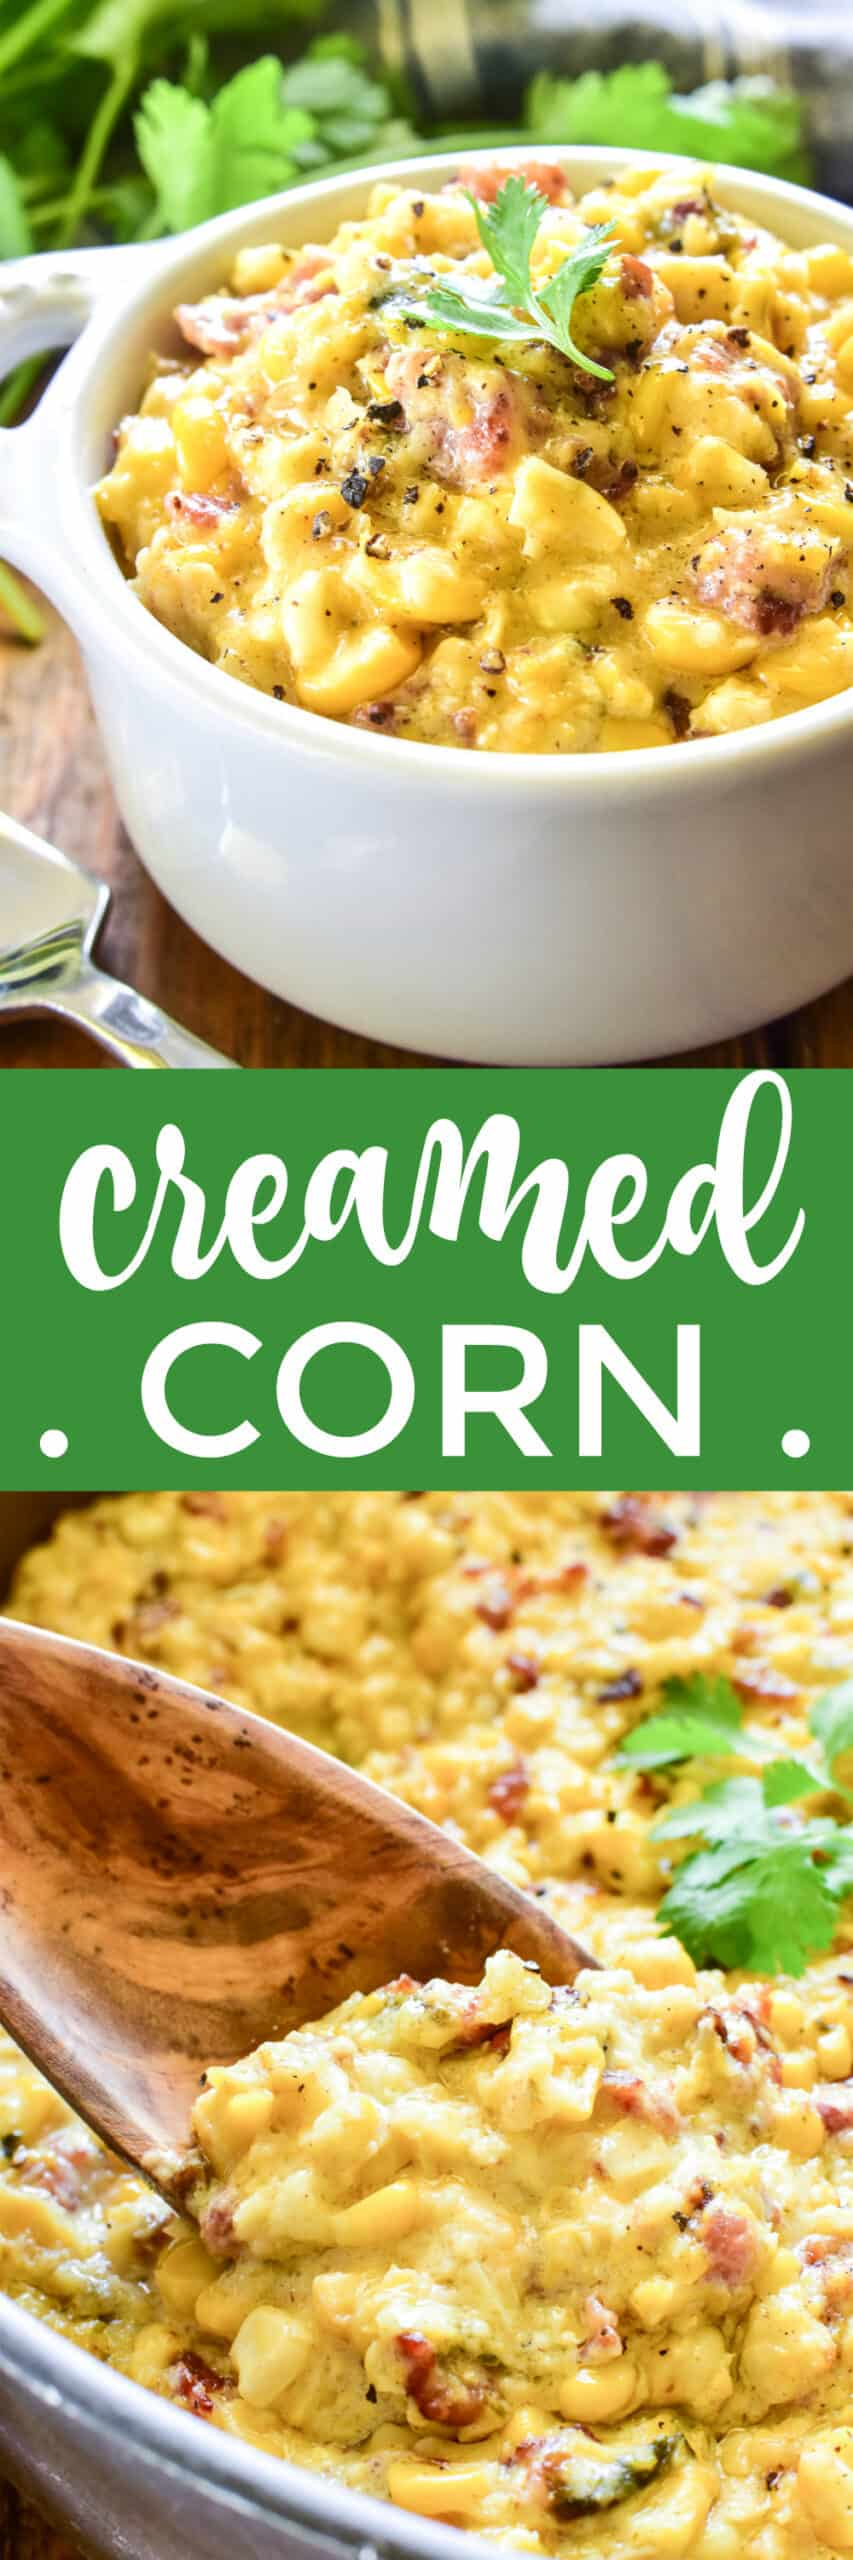 Collage image of Creamed Corn